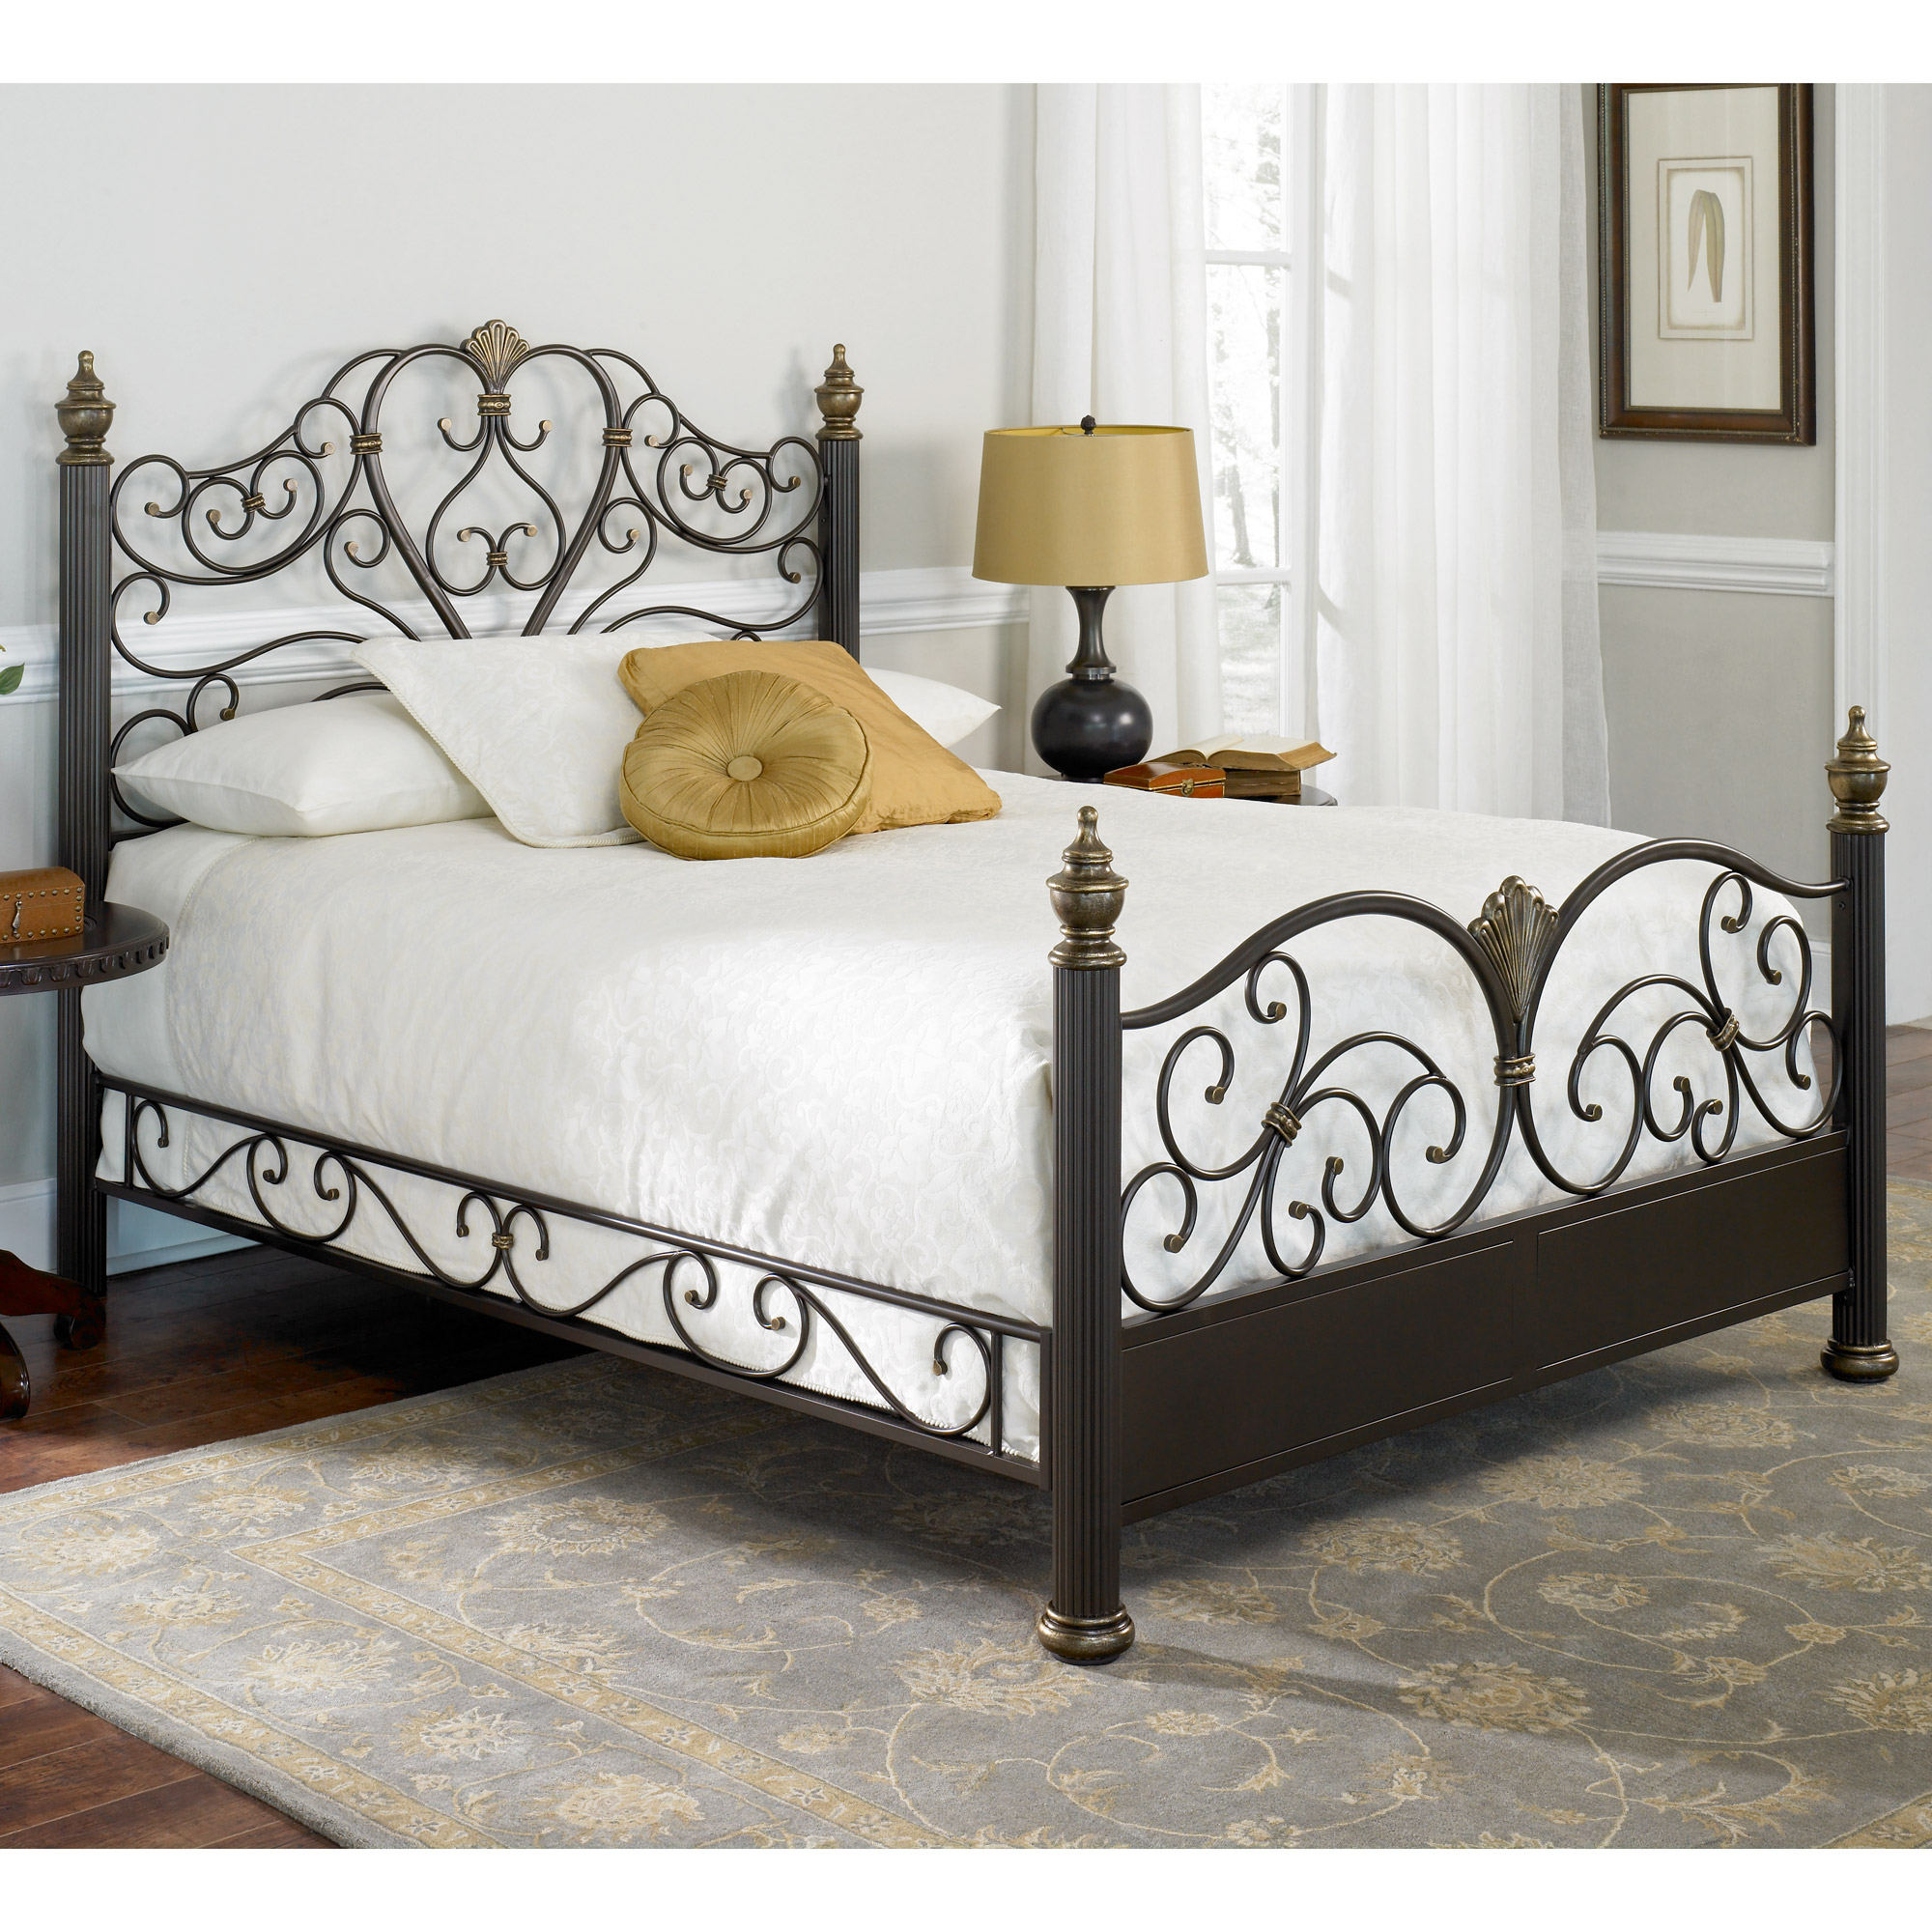 Details About Ikea Wrought Iron King Size Bed Frame : Bed Mattress Sale